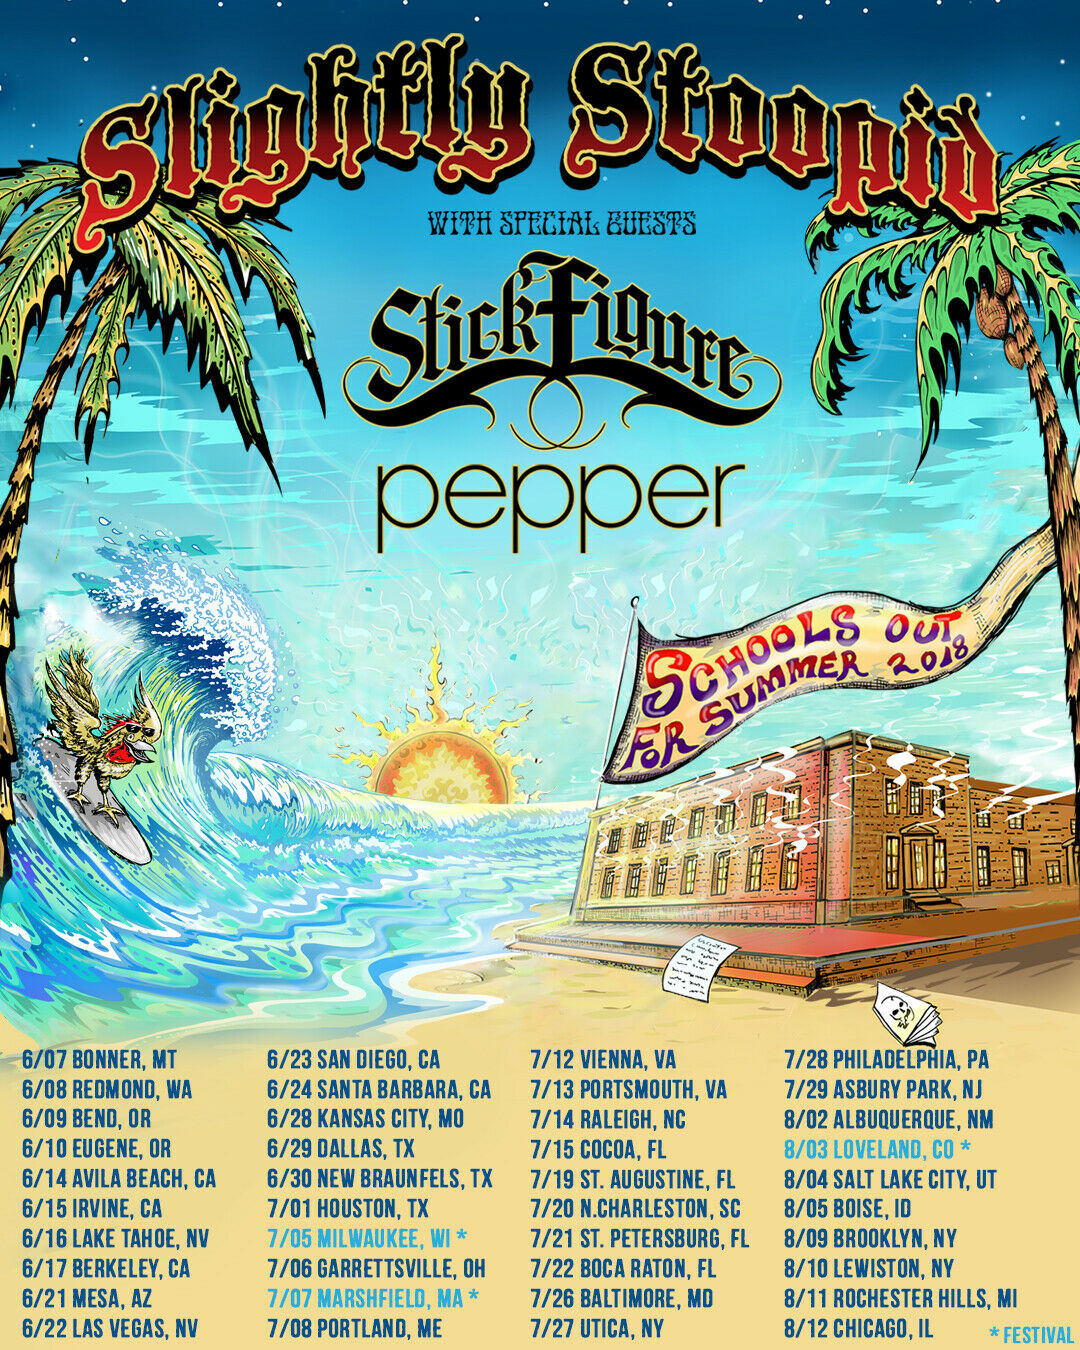 SLIGHTLY STOOPID/STICK FIGURE/PEPPER SCHOOLS OUT SUMMER 2018 POSTER TOUR DATES - $10.99